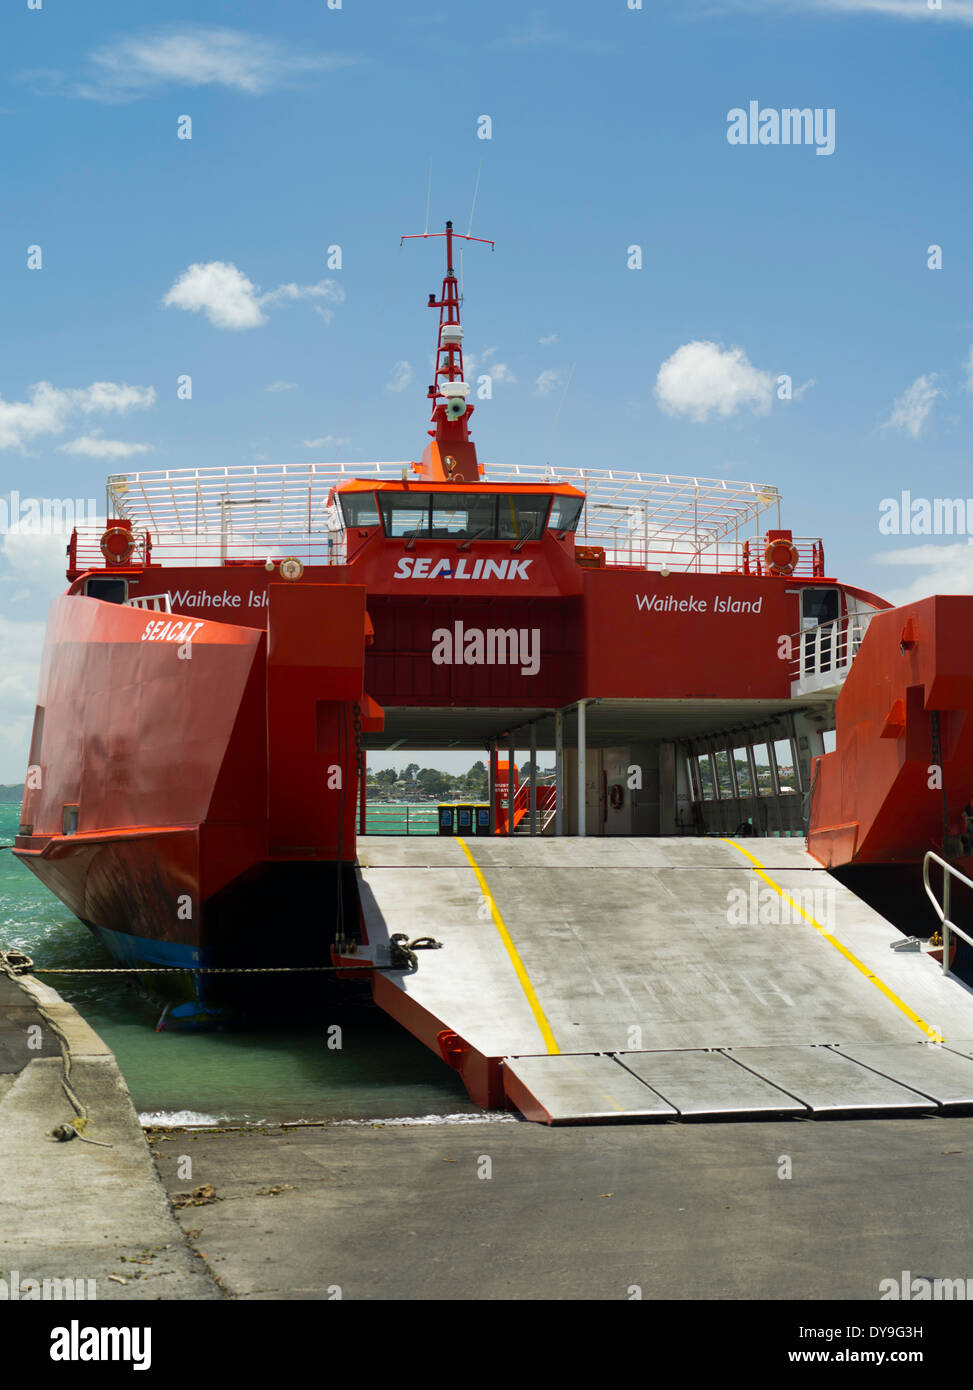 The Sealink Ferry Seacat Prepares To Load Vehicles At The